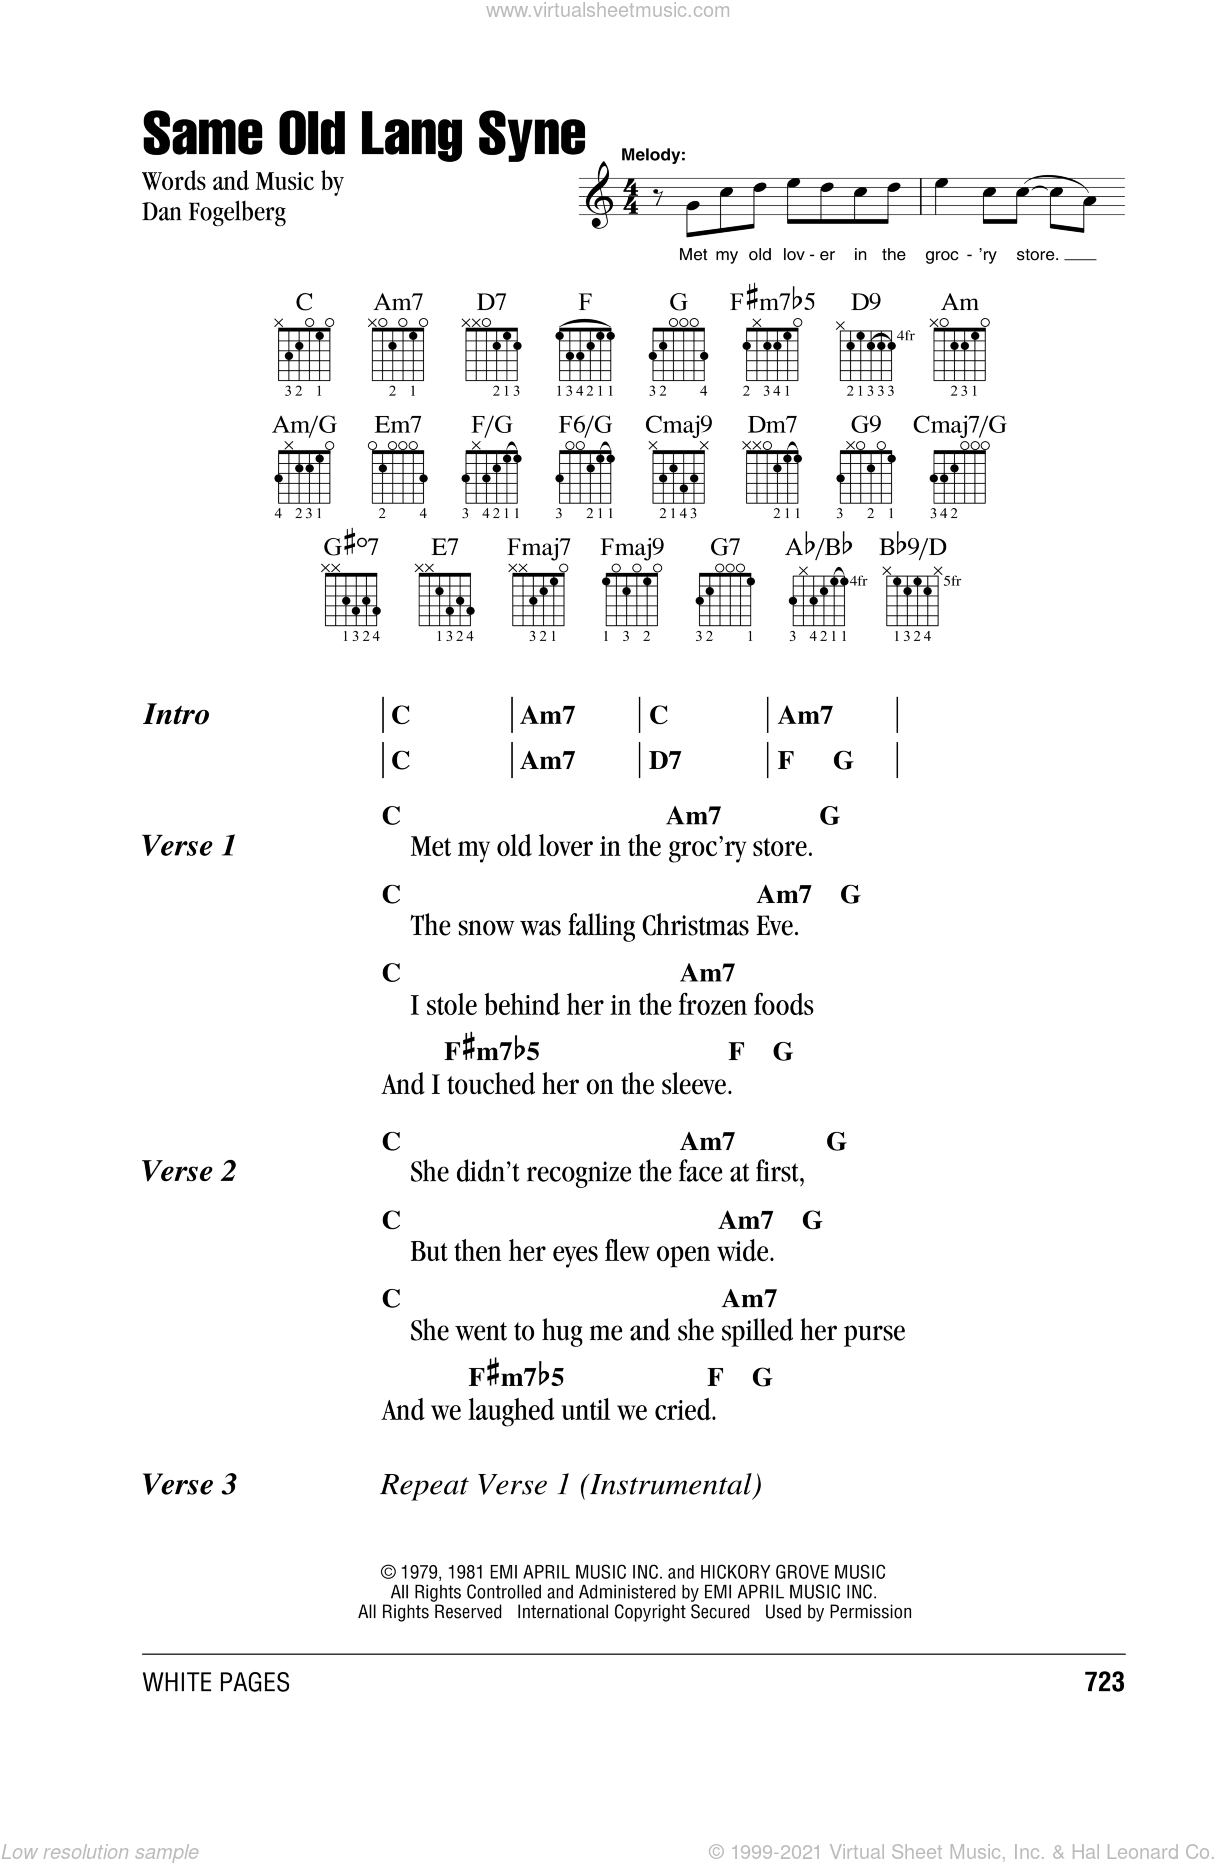 Same Old Lang Syne sheet music for guitar (chords) by Dan Fogelberg